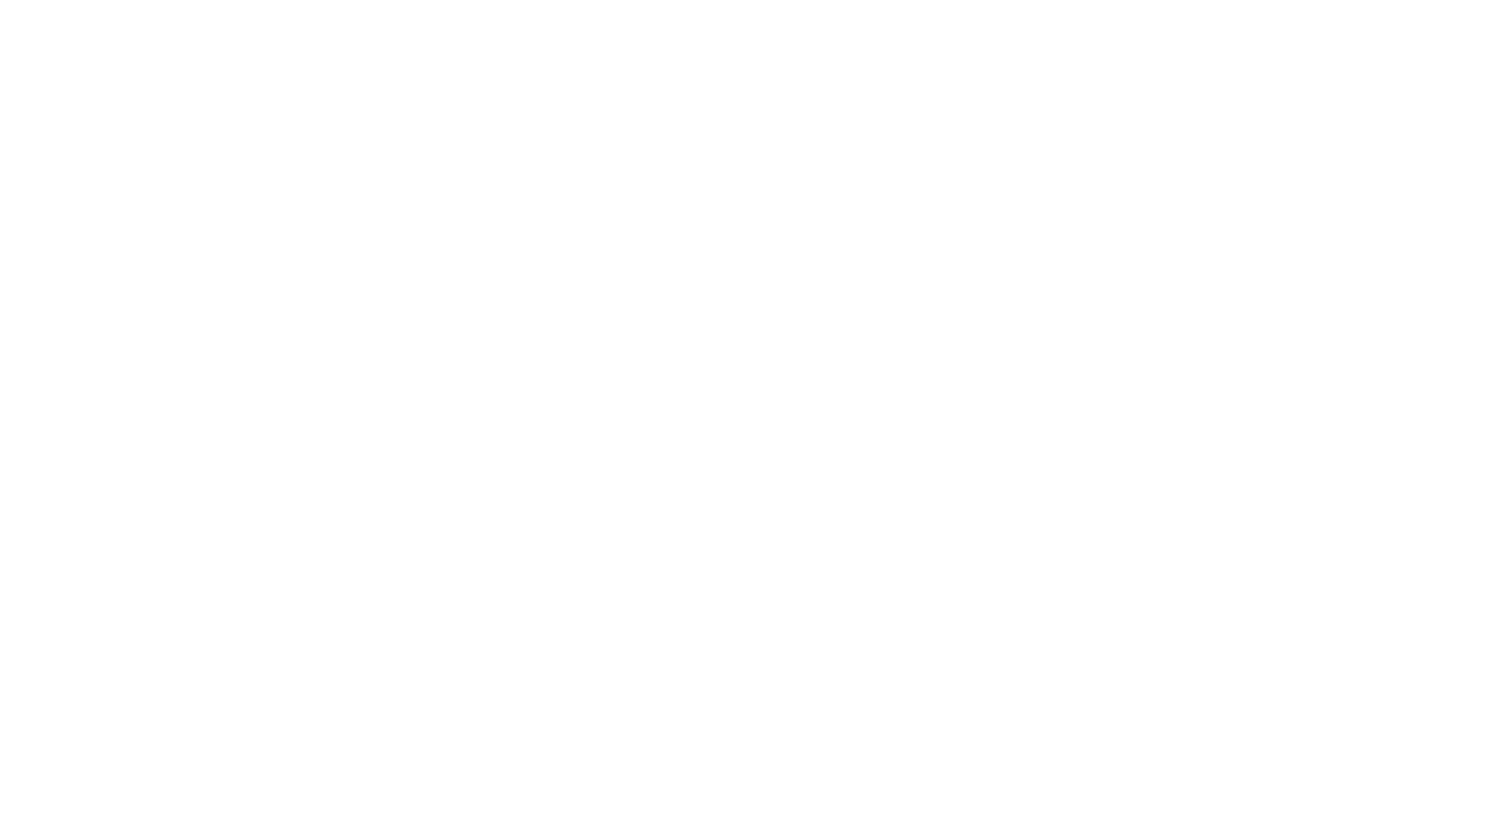 Wollaston Hill Neighborhood Association